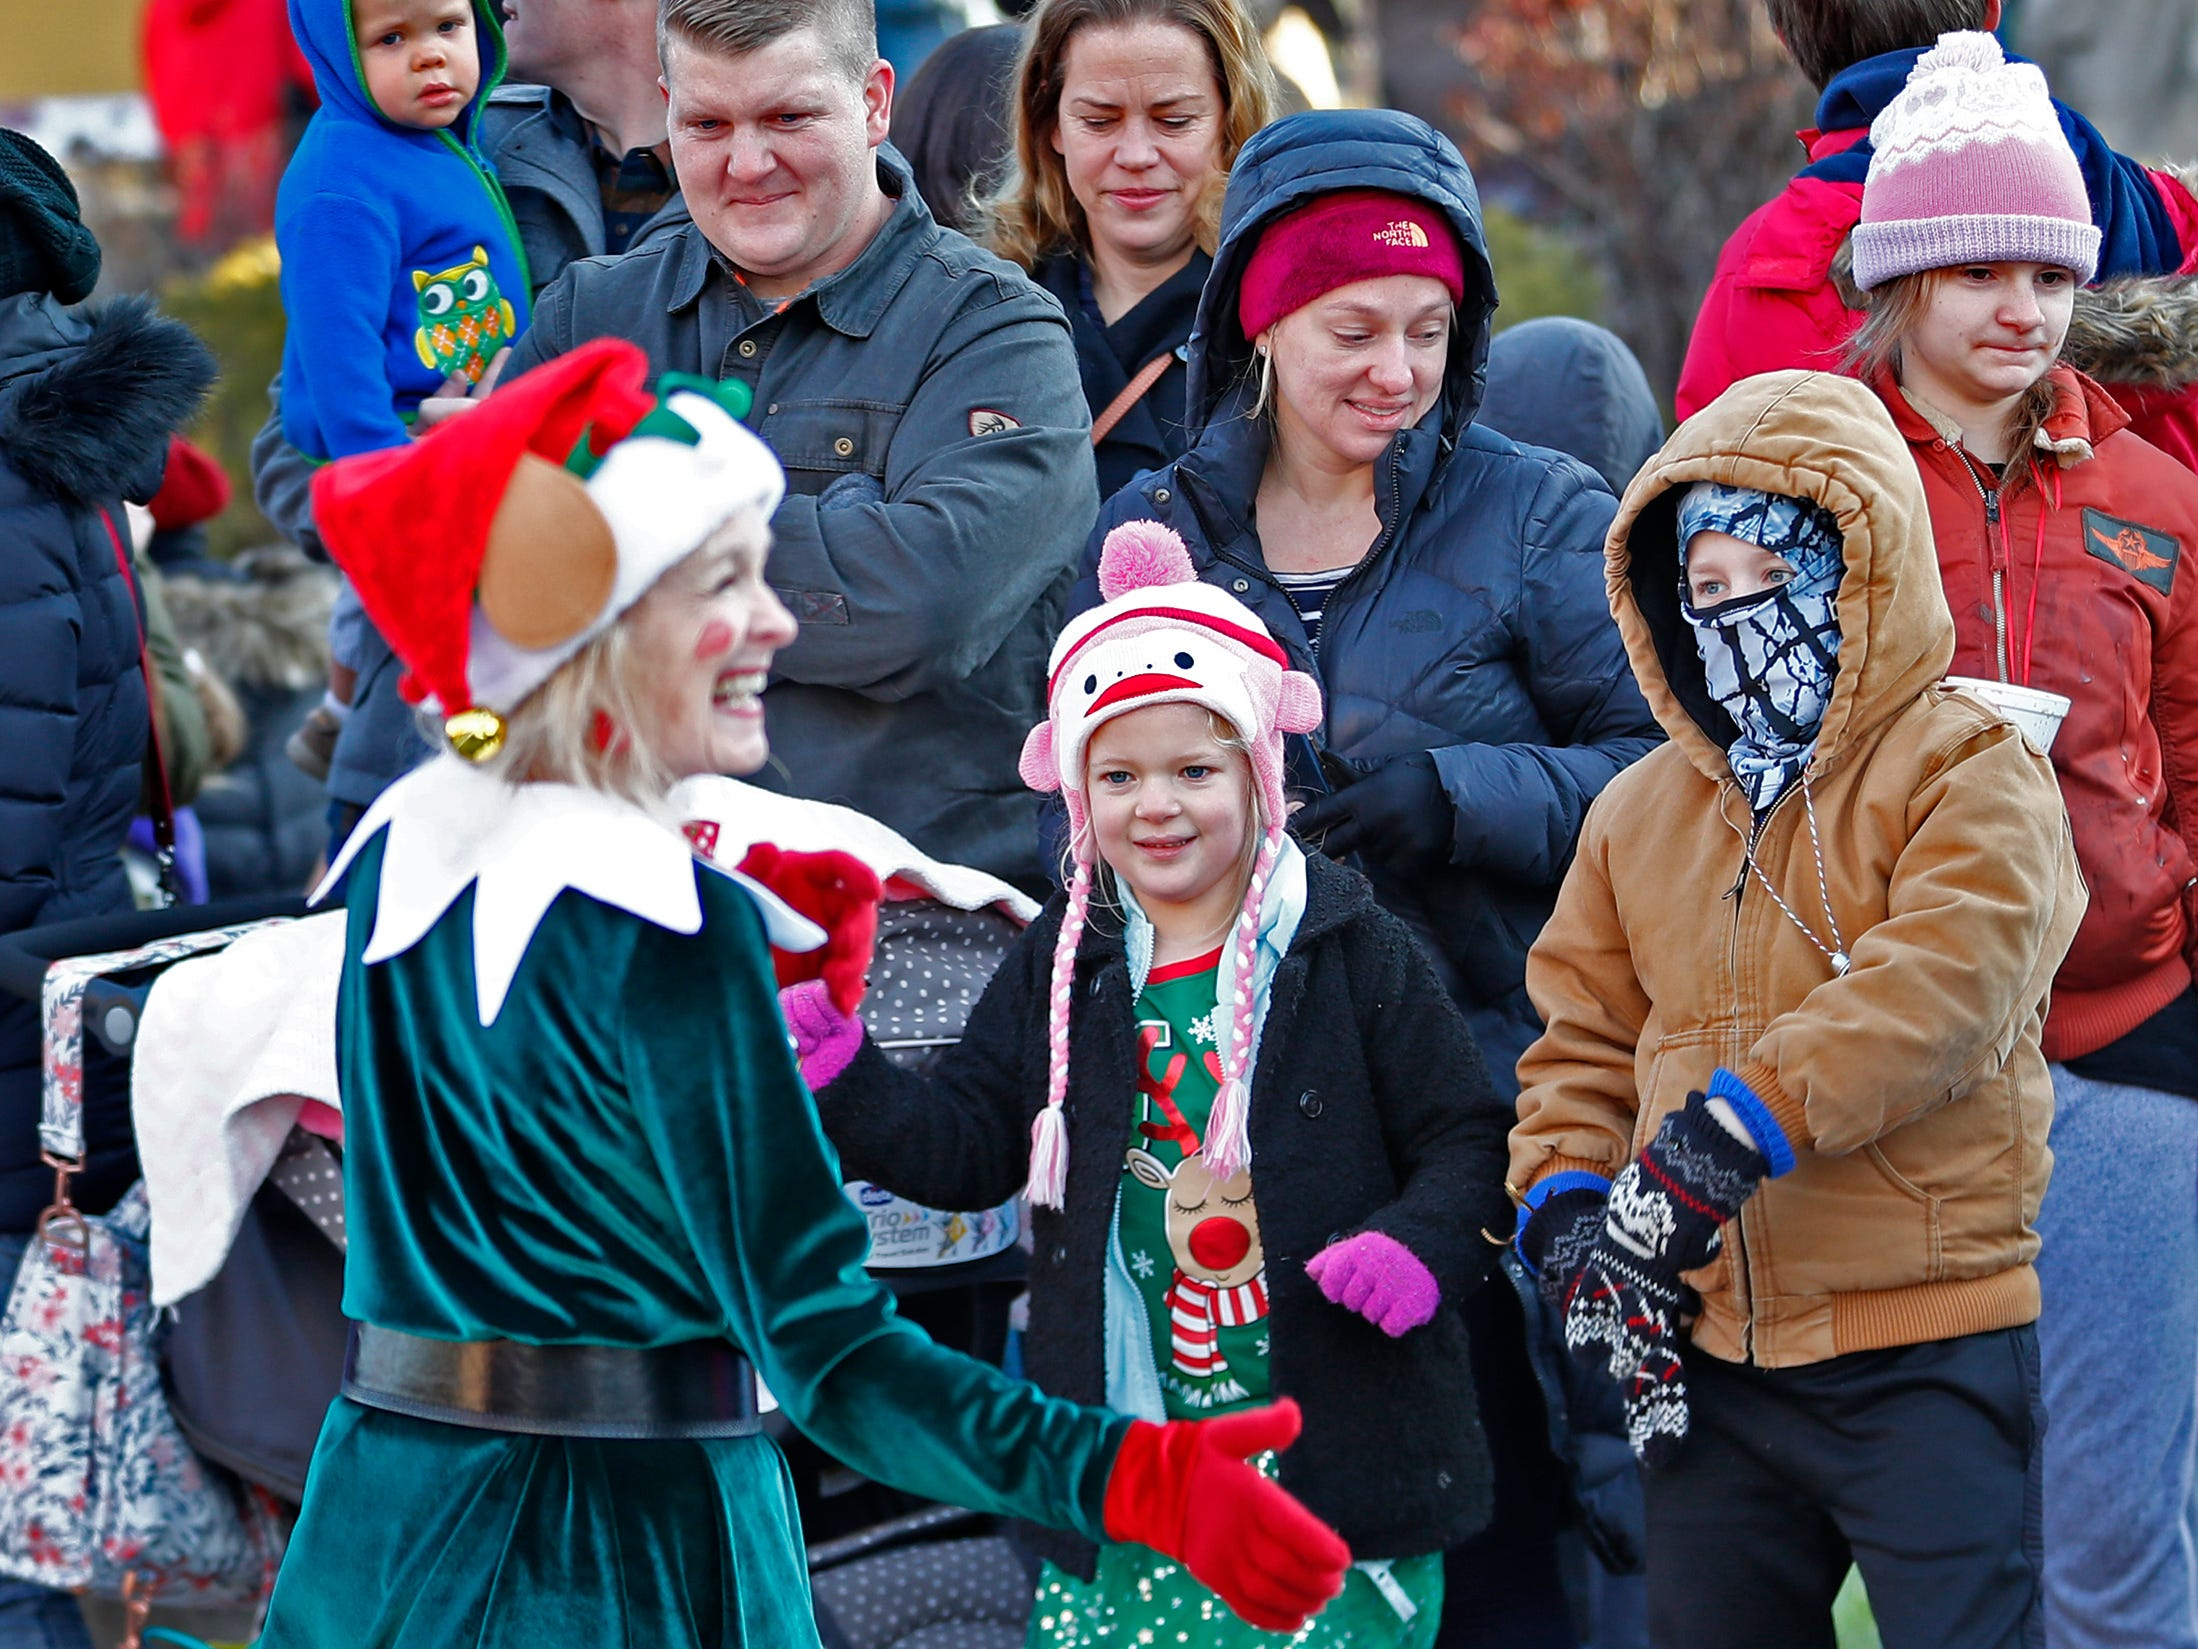 Elves entertain the crowd as everyone awaits Santa's arrival at the Children's Museum of Indianapolis in an IndyCar driven by racer Ed Carpenter, Friday, Nov. 23, 2018.  Emma Booher, center, and her brother, Ethan Booher, dance with the elves and holiday music.